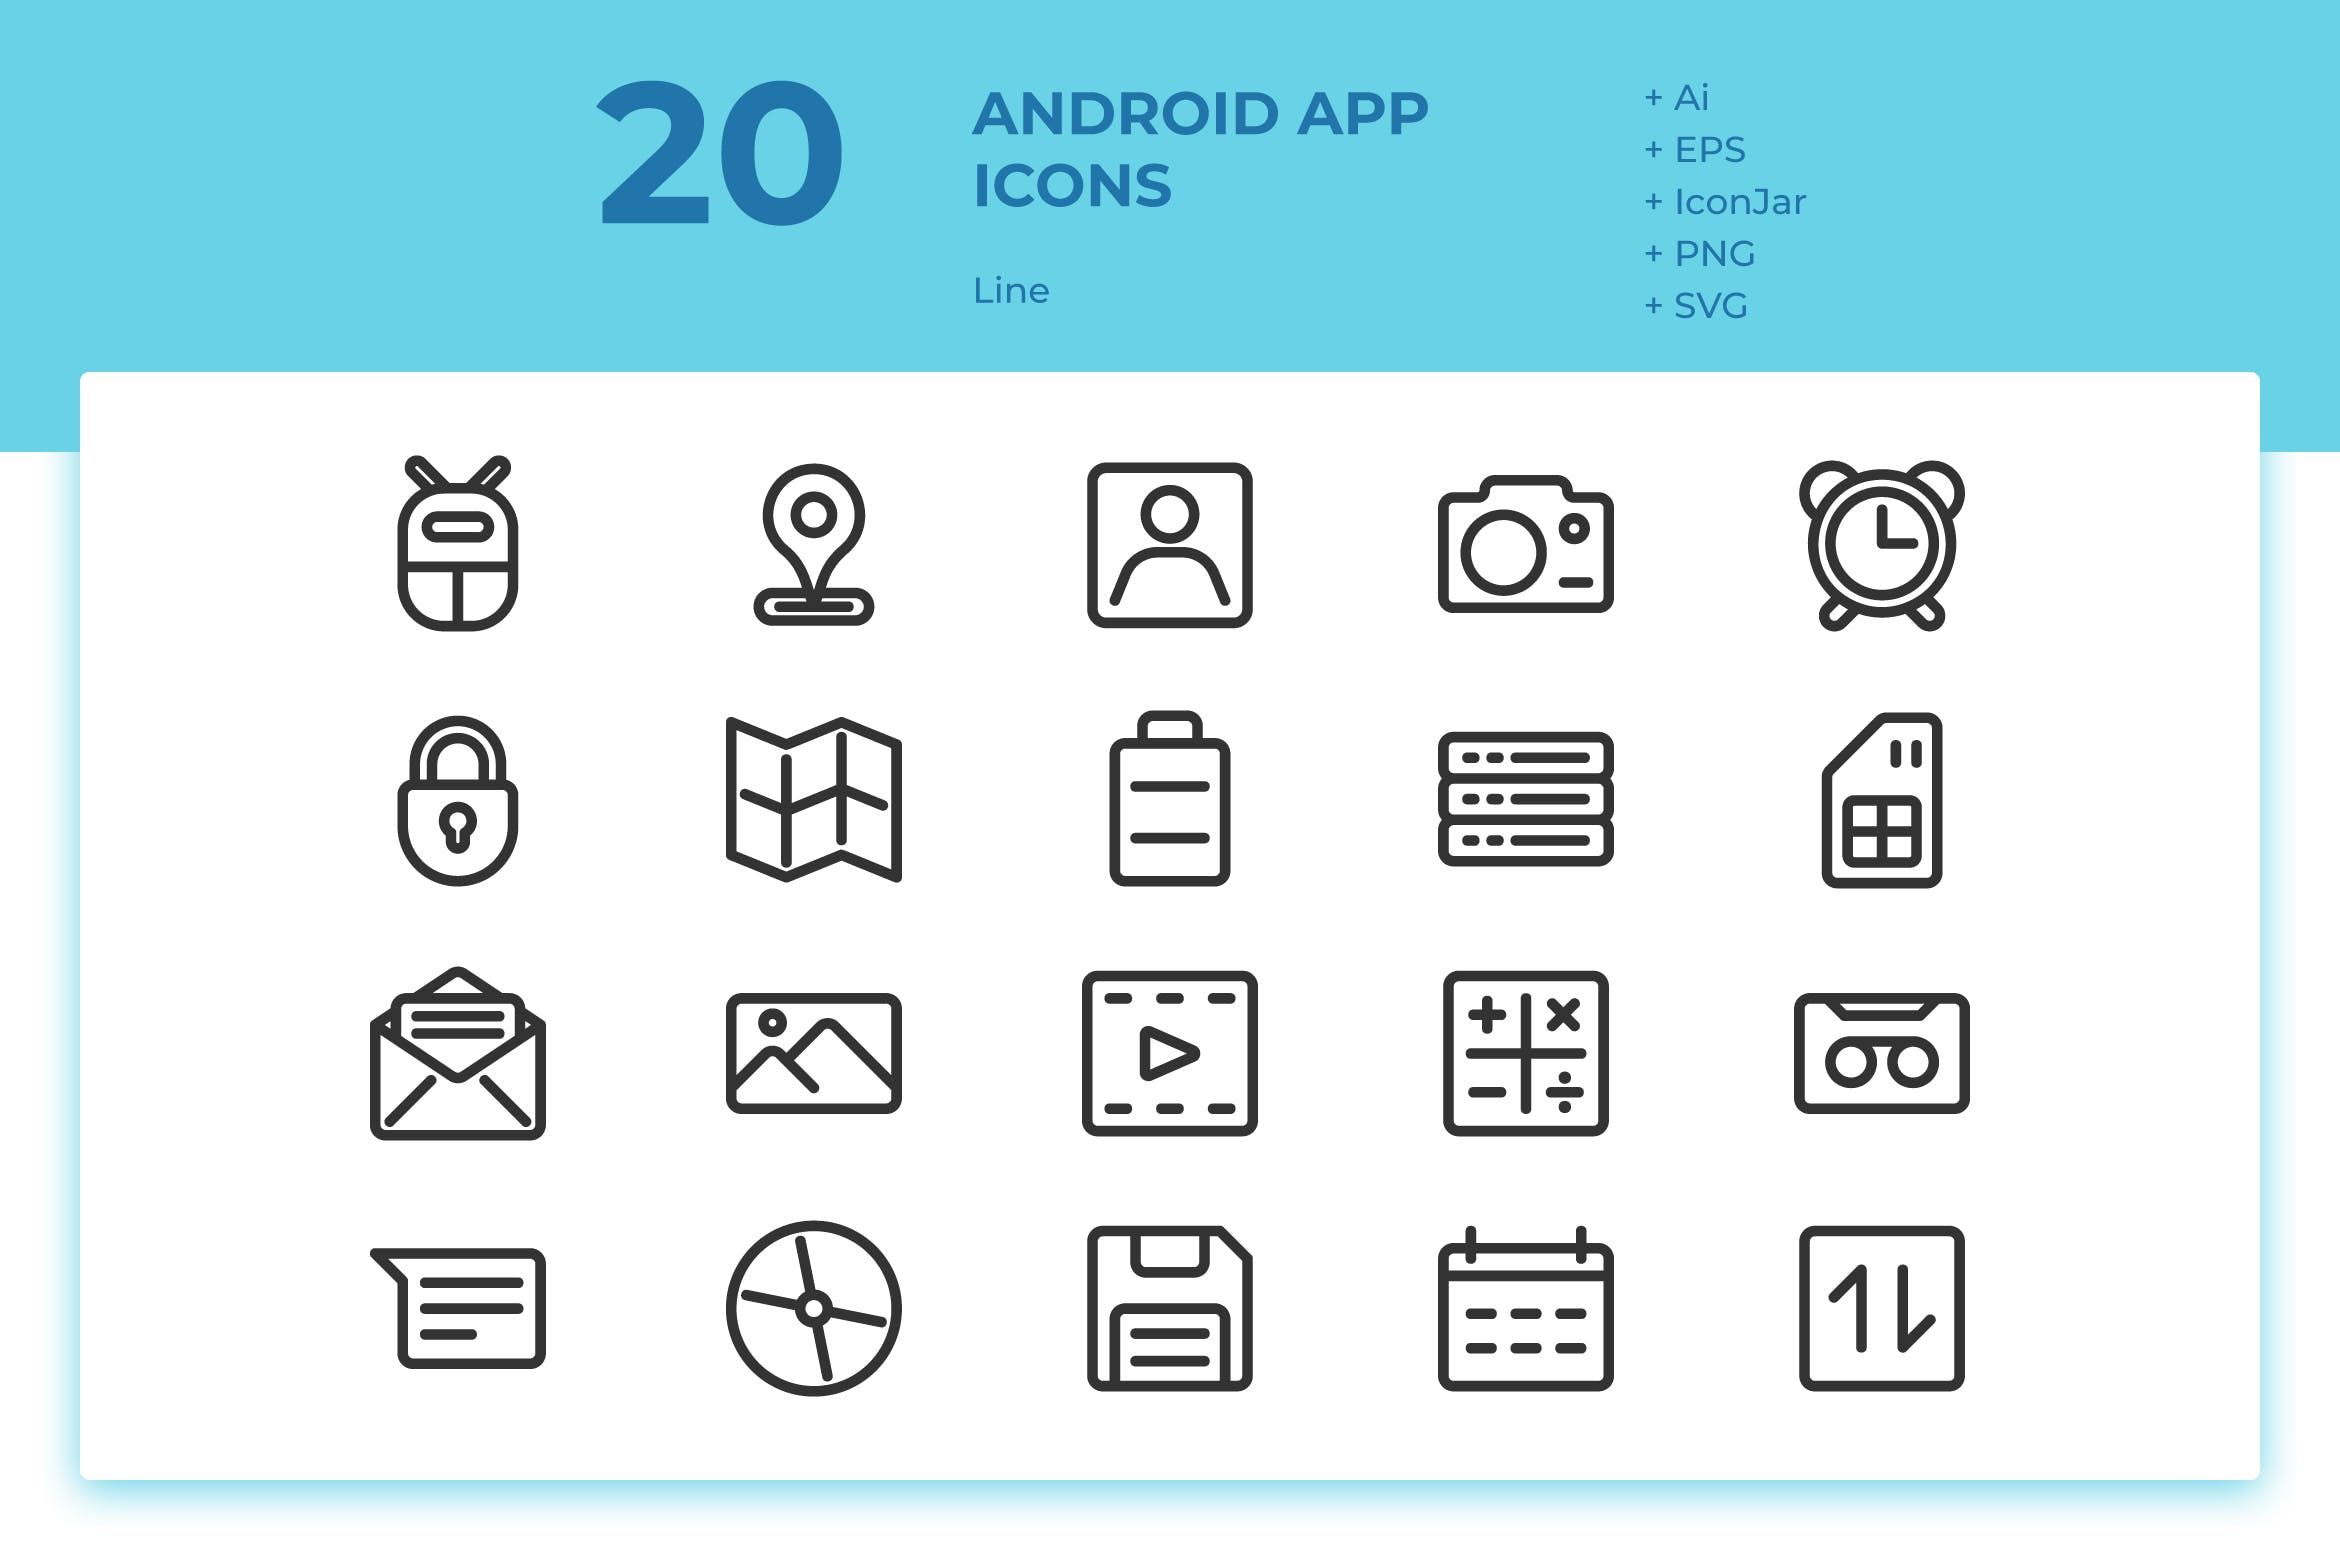 20 Android App Icons (Line) by inipagi on di 2020